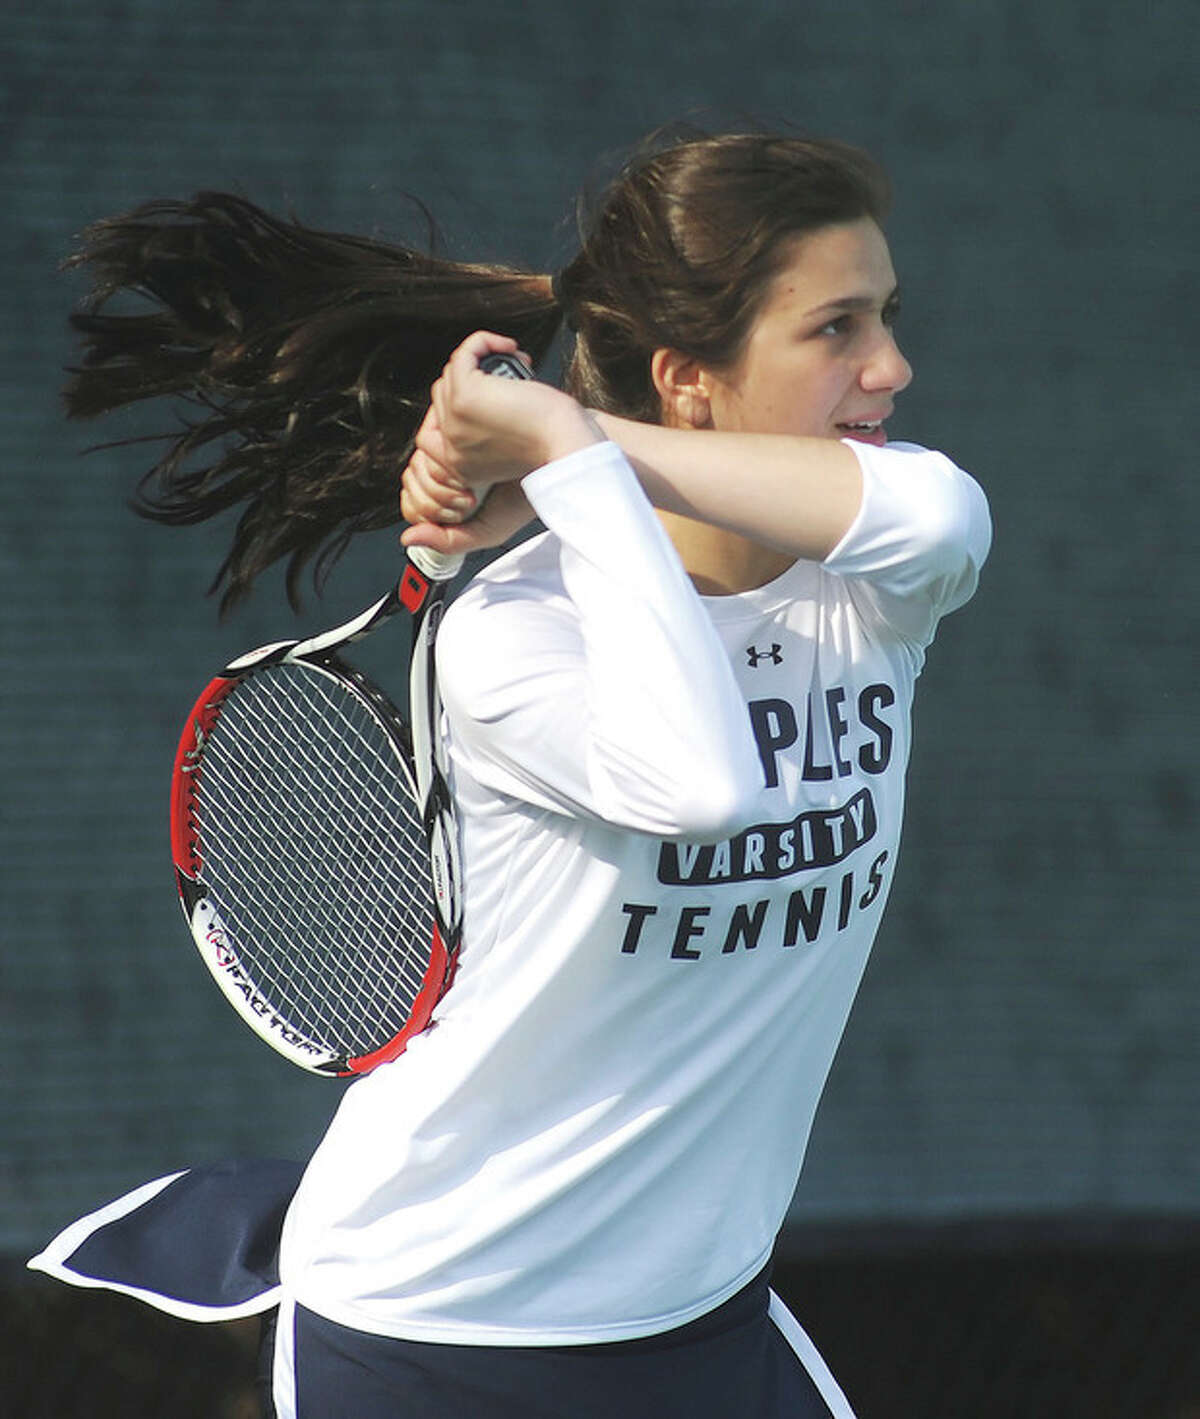 Hour photo/John Nash Melissa Beretta, the No. 1 singles player from Staples, laces a back-hand return during her team's win over Danbury on Monday afternoon.